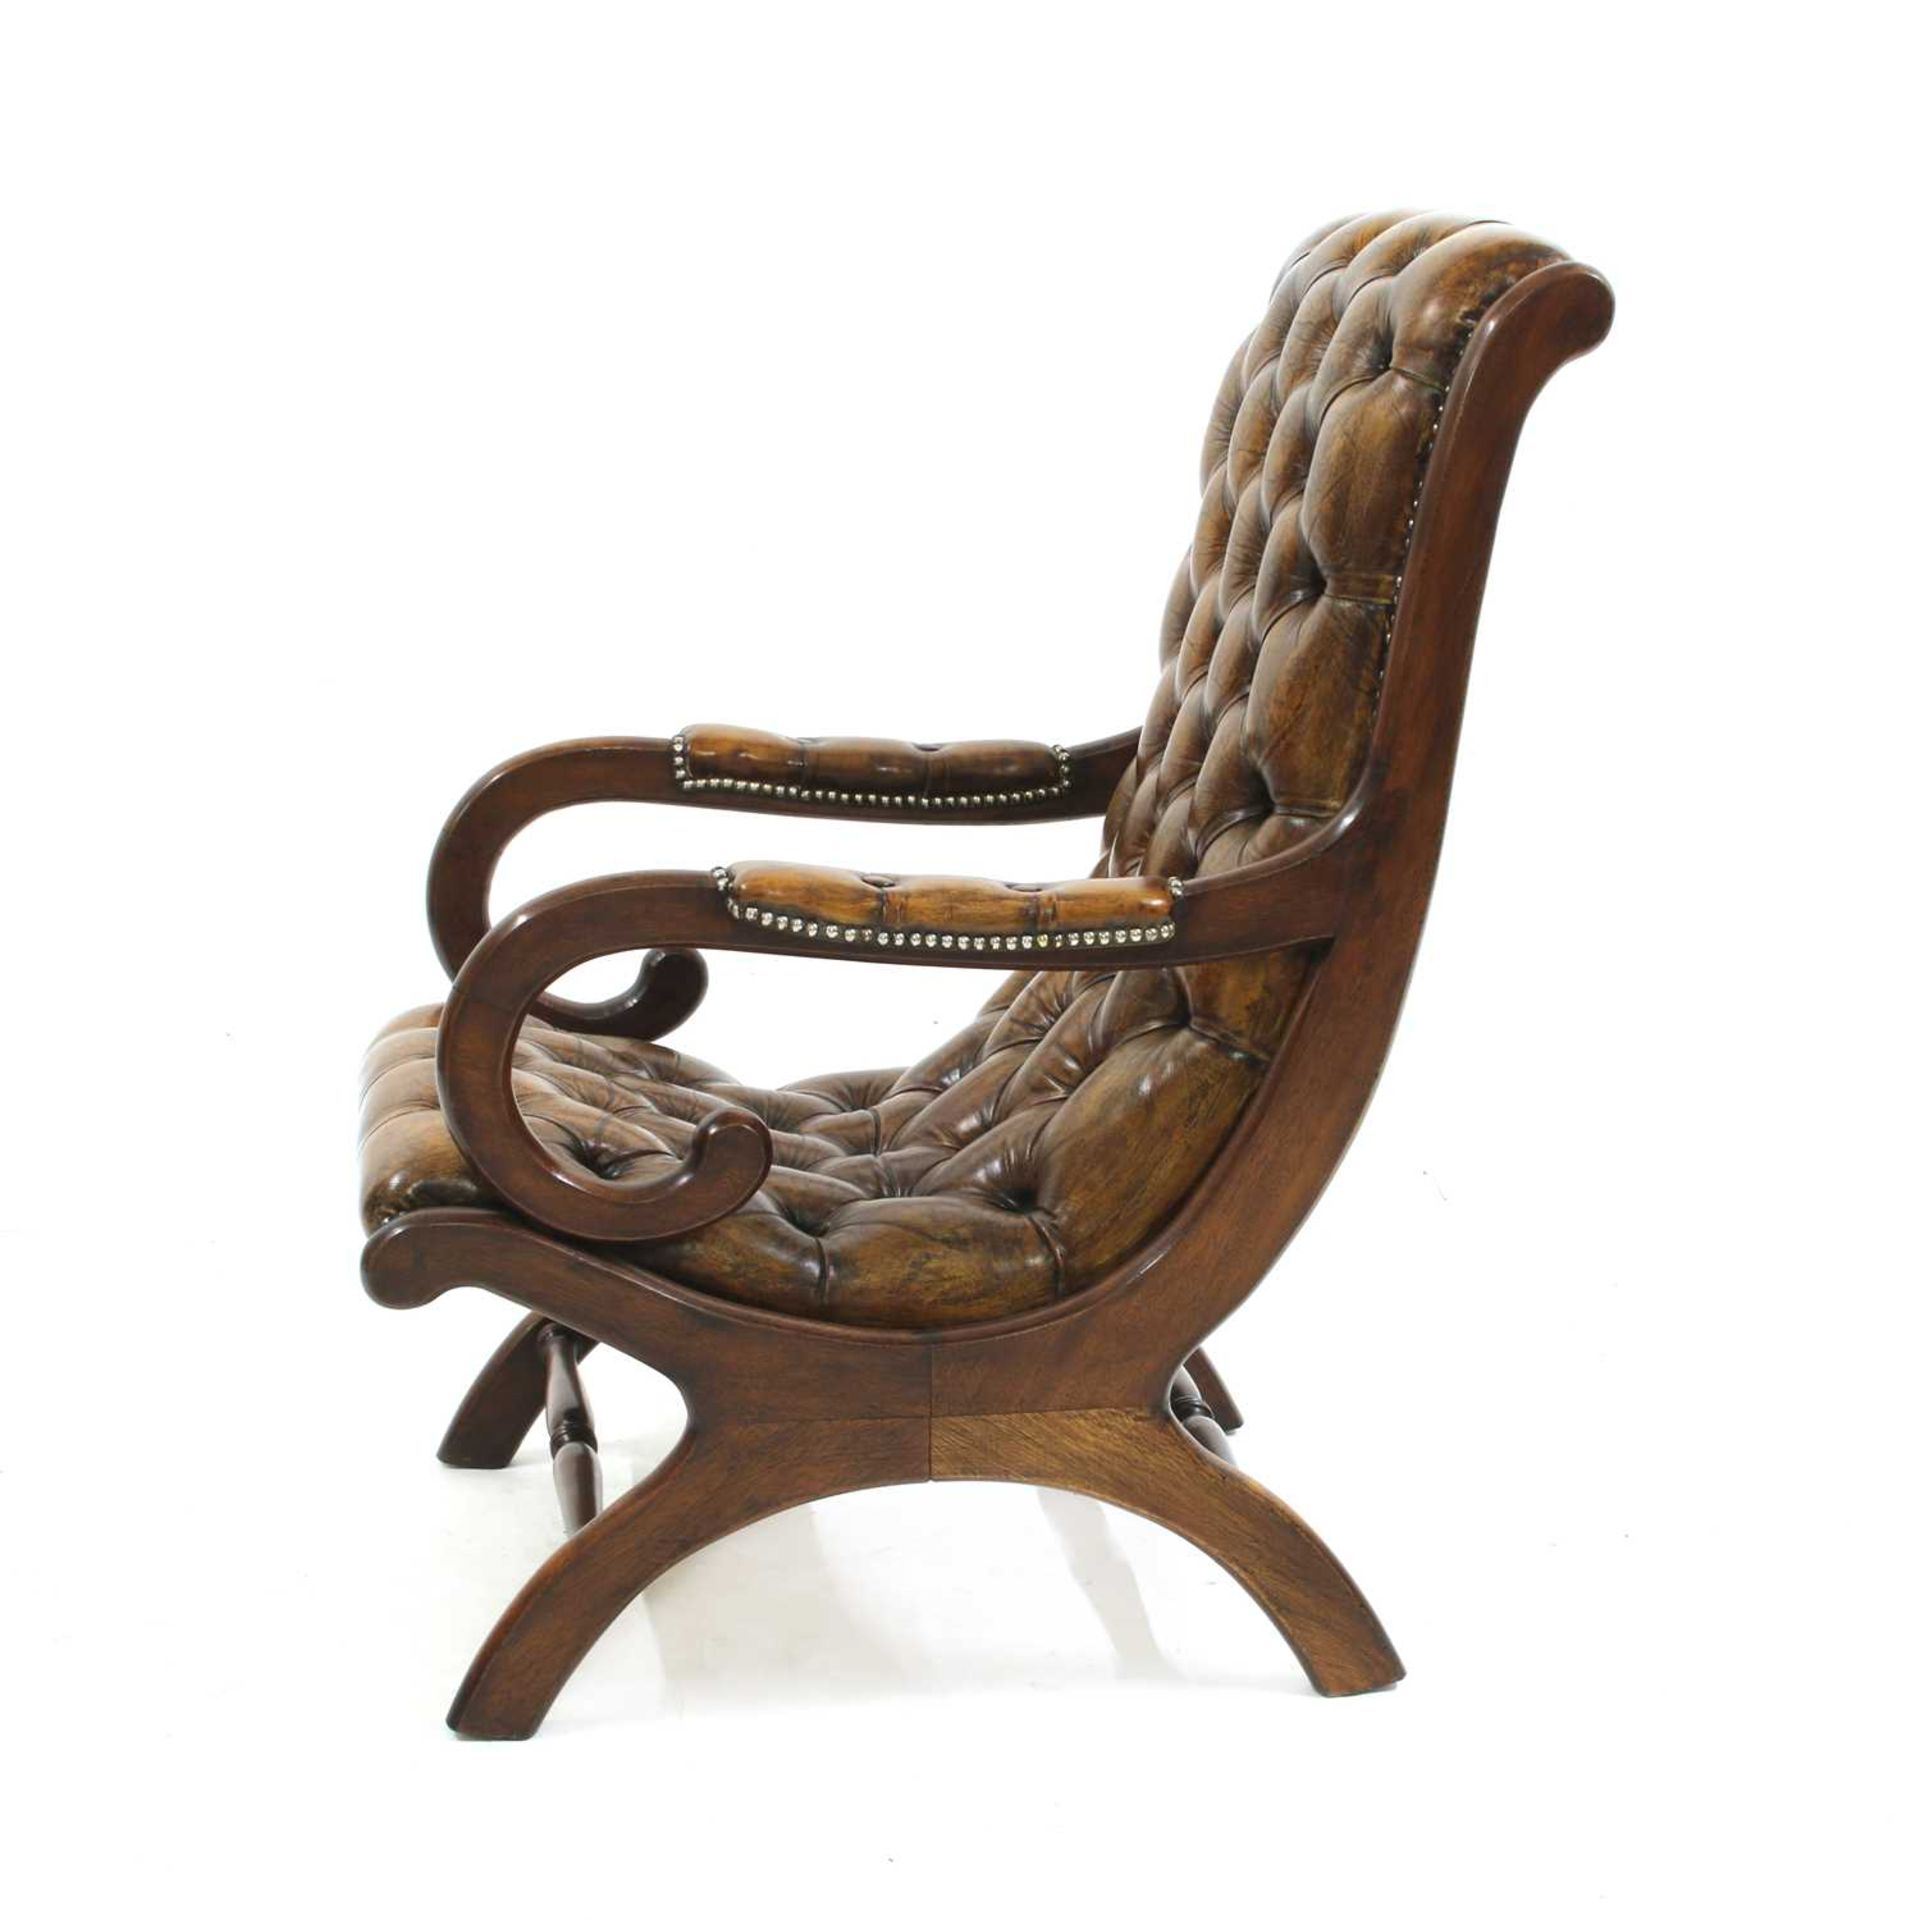 A William IV-style mahogany armchair, - Image 2 of 5